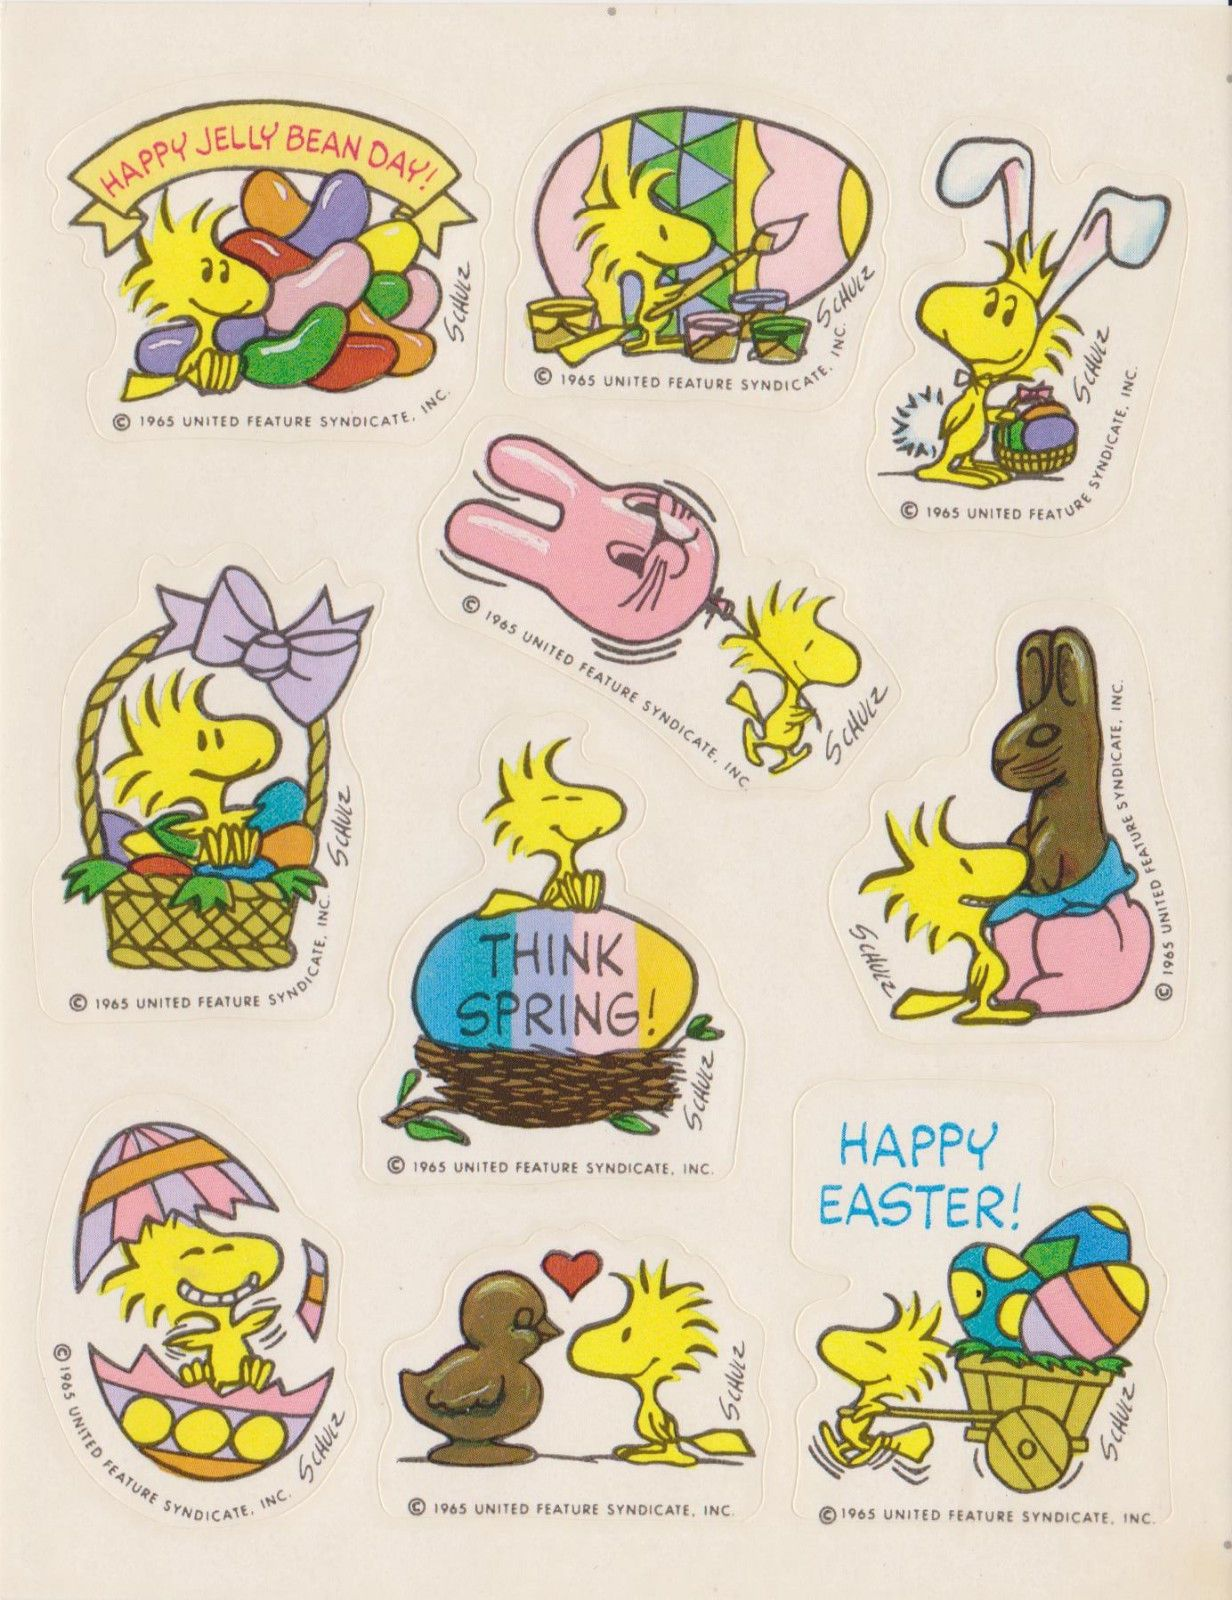 Vintage Rare Hard To Find Snoopy Easter Sticker Sheet By Hallmark Snoopy Easter Easter Stickers Snoopy